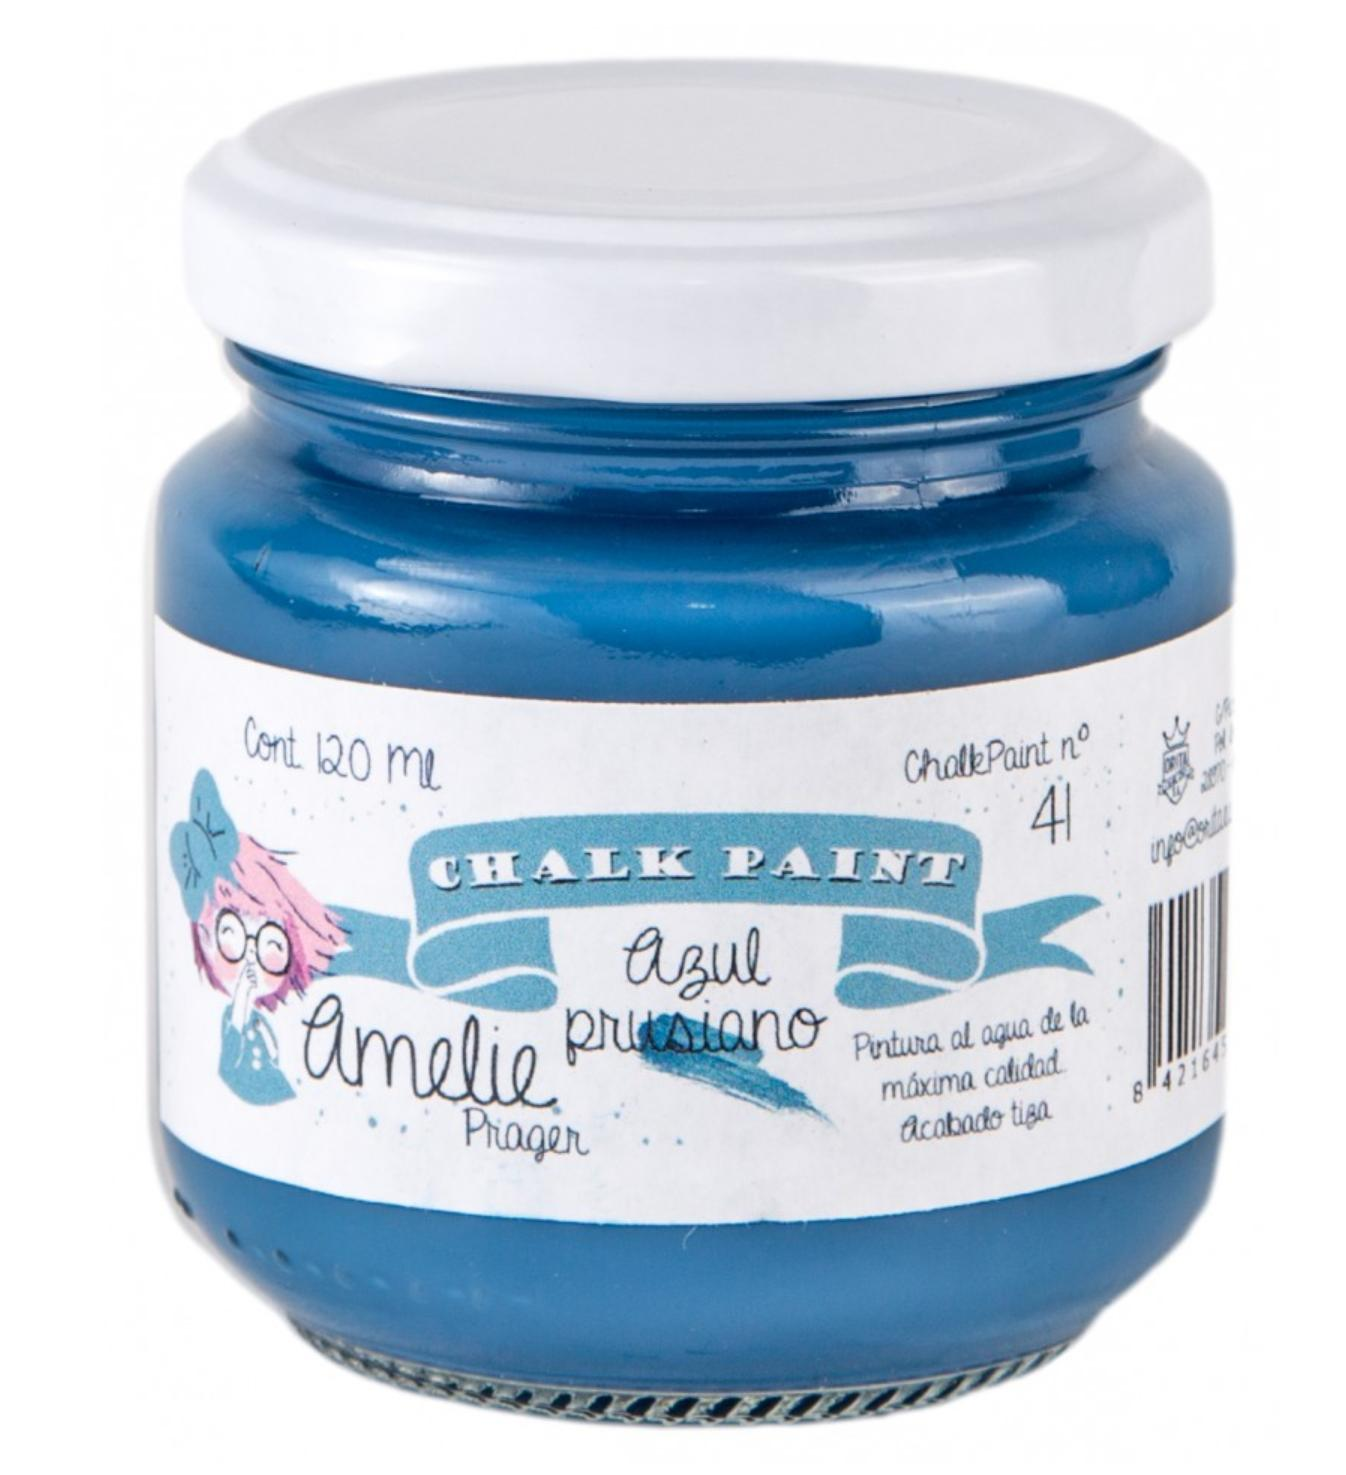 CHALK PAINT AMELIE  120ML COLOR 41 AZUL PRUSIANO